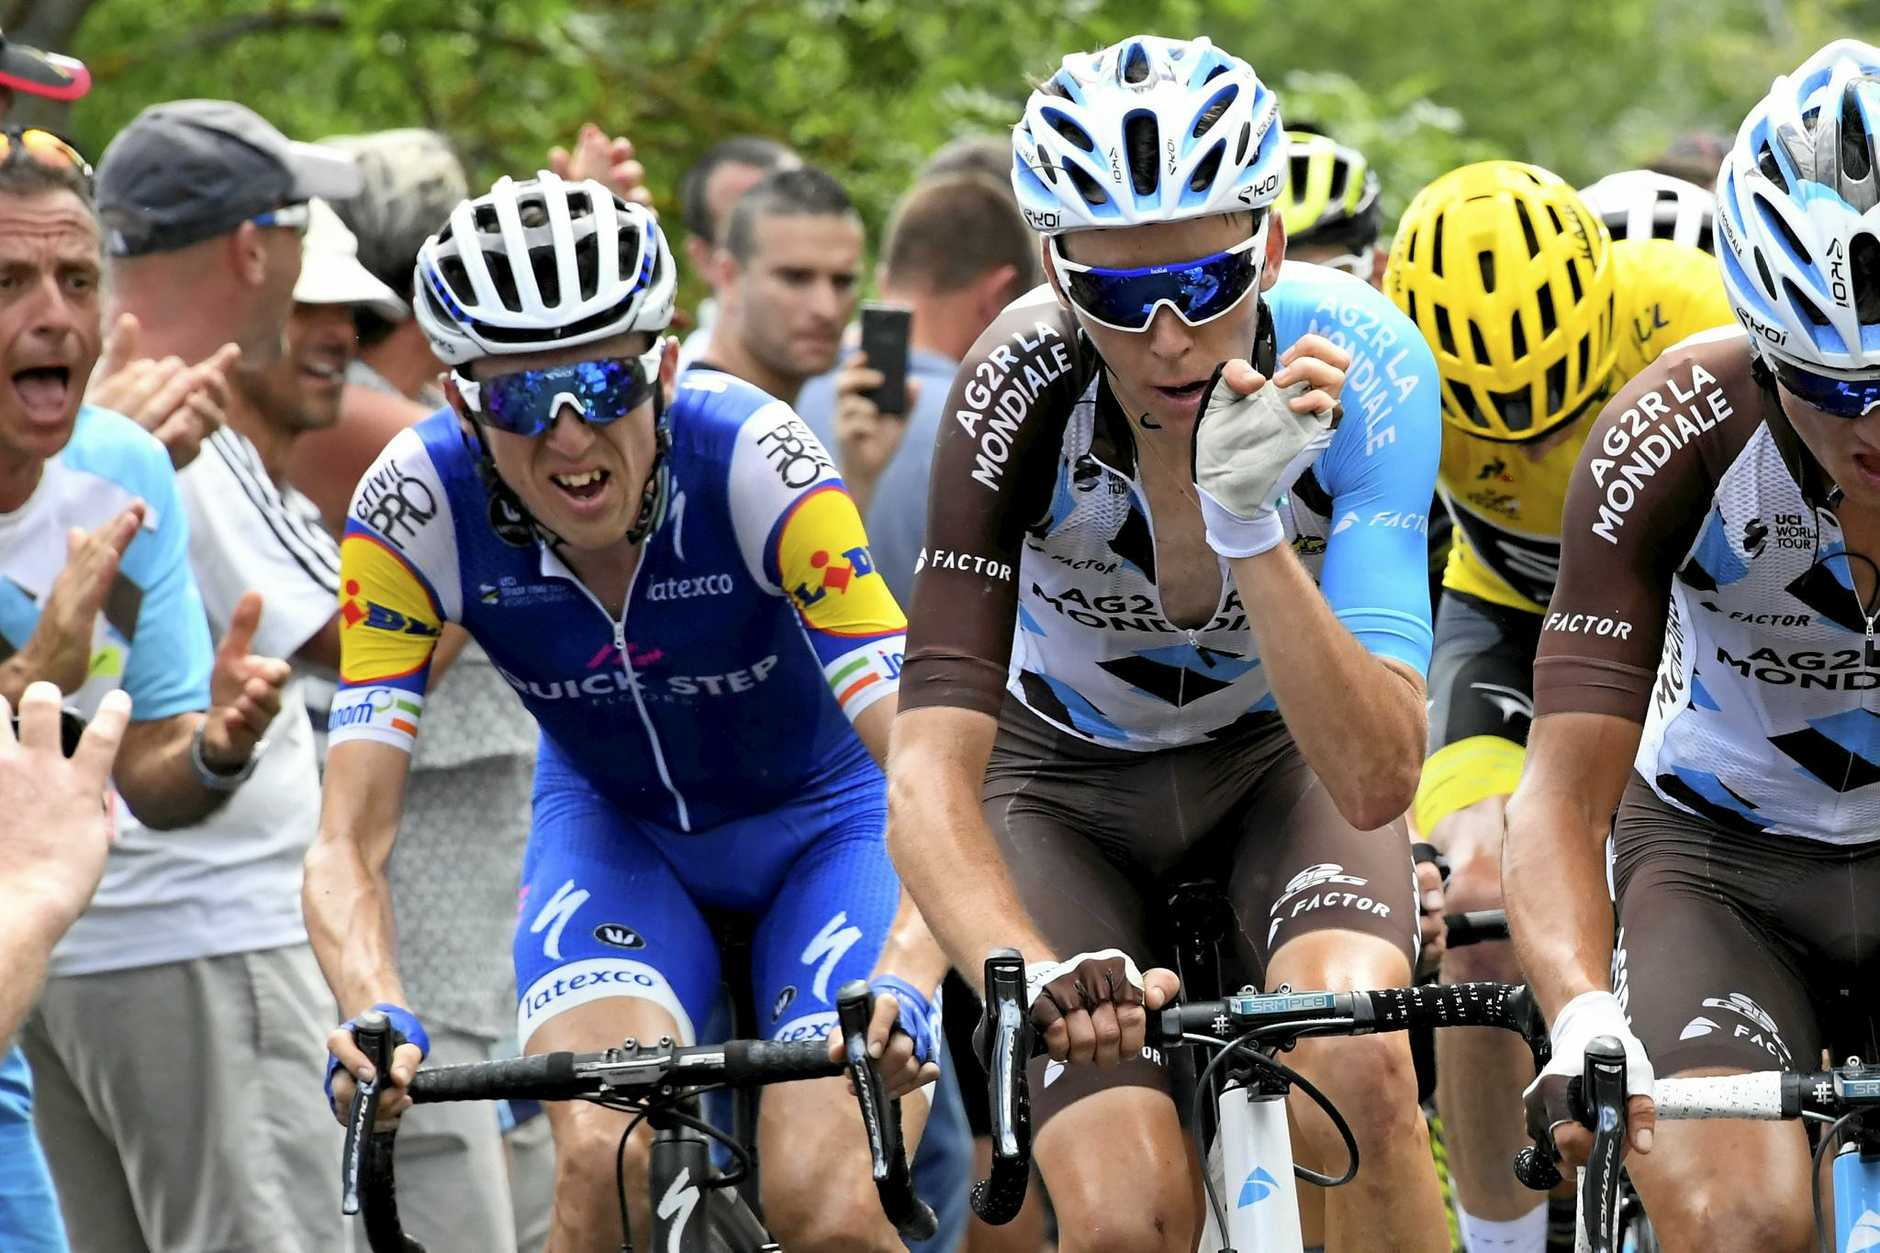 Ireland's Daniel Martin (left), France's Romain Bardet, and Britain's Chris Froome, wearing the overall leader's yellow jersey climb during the fifteenth stage of the Tour de France.